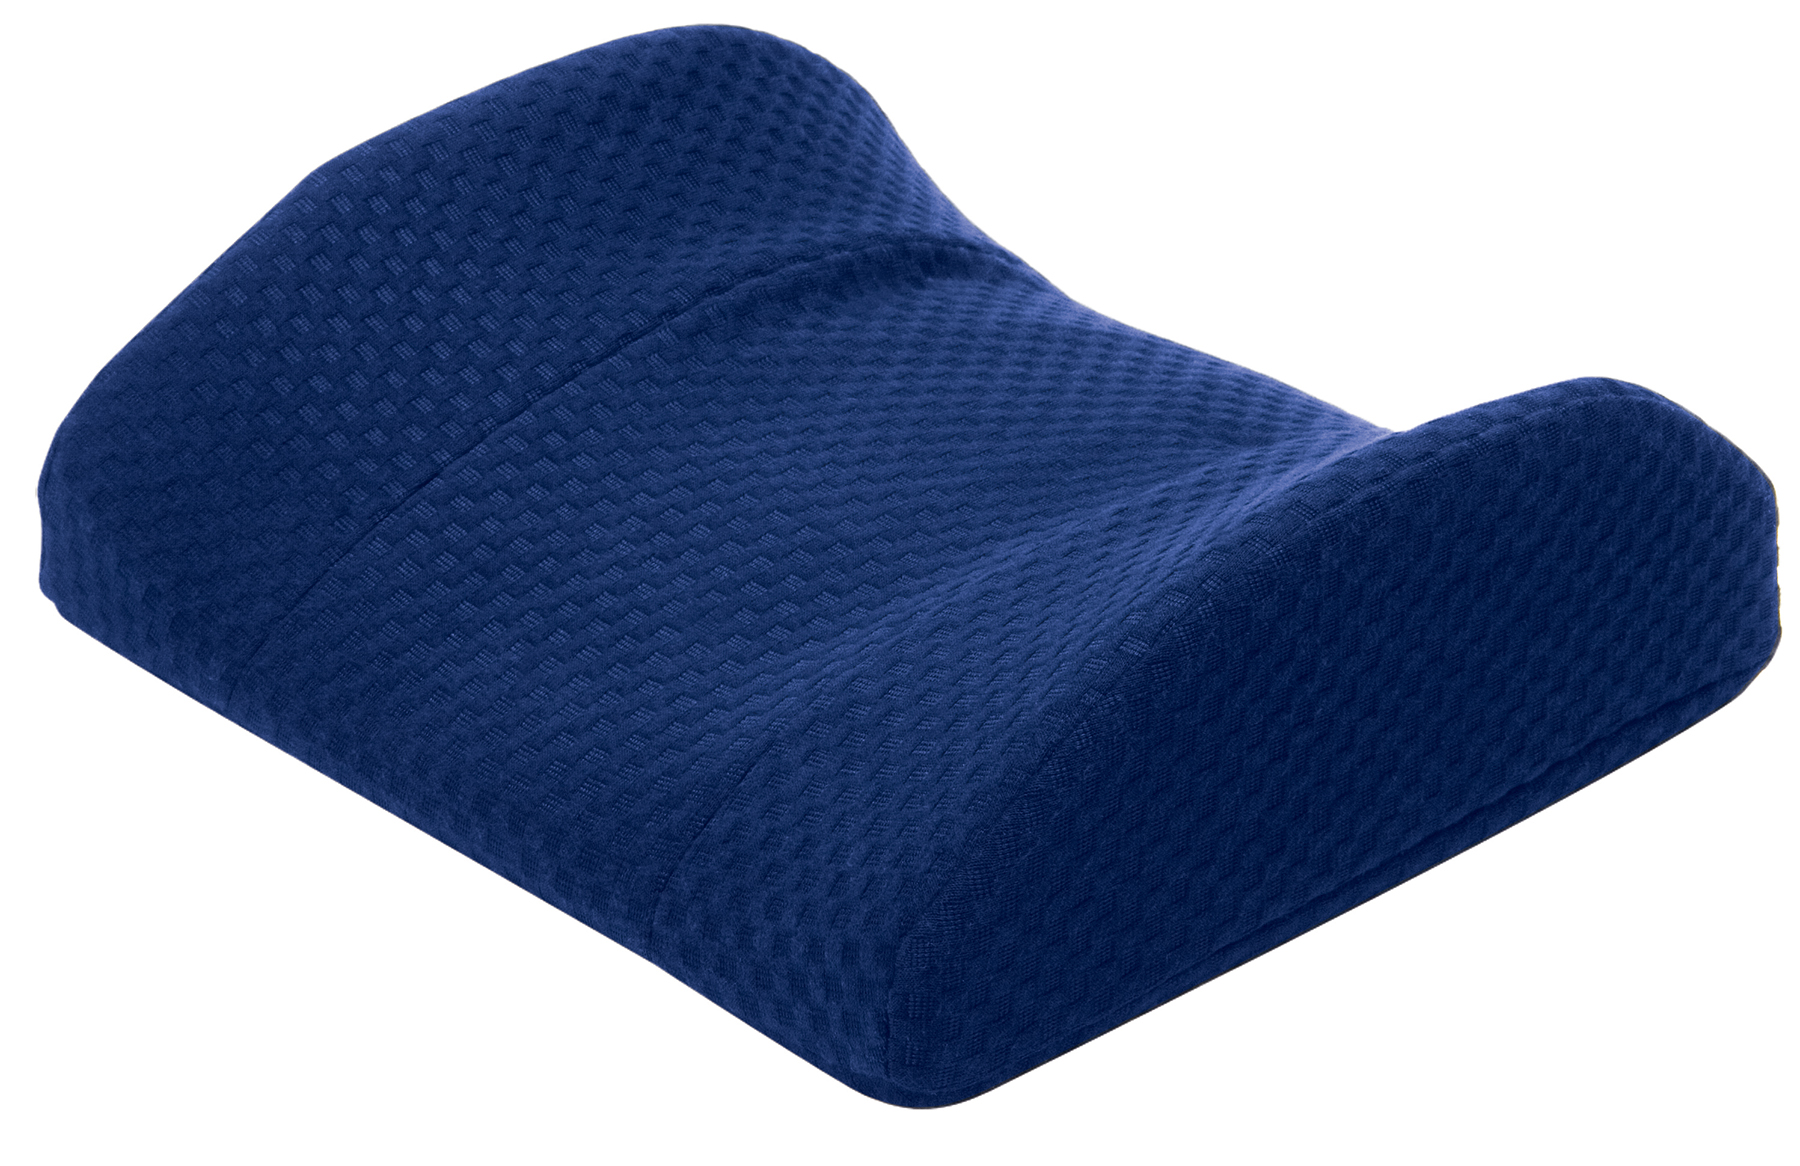 carex memory foam lumbar support cushion walmart com